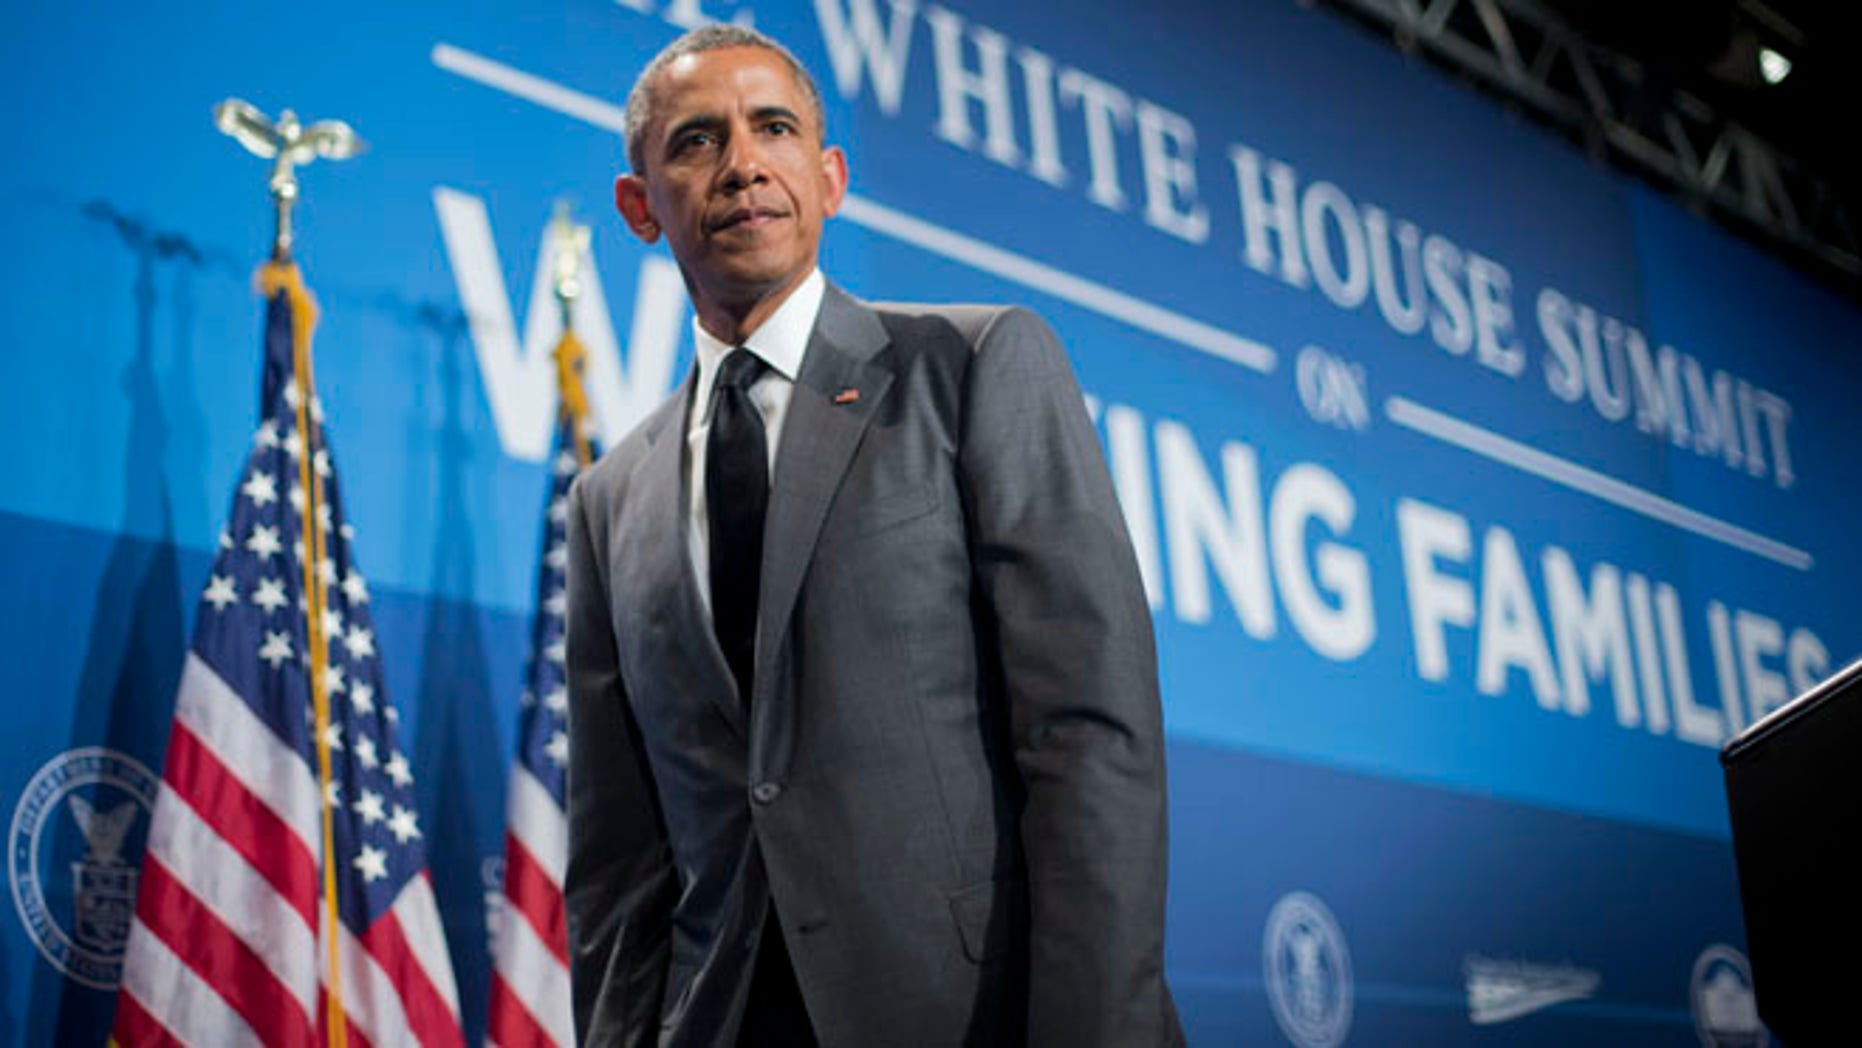 June 23, 2014: President Obama walks off stage after speaking at the White House Summit on Working Families in Washington.